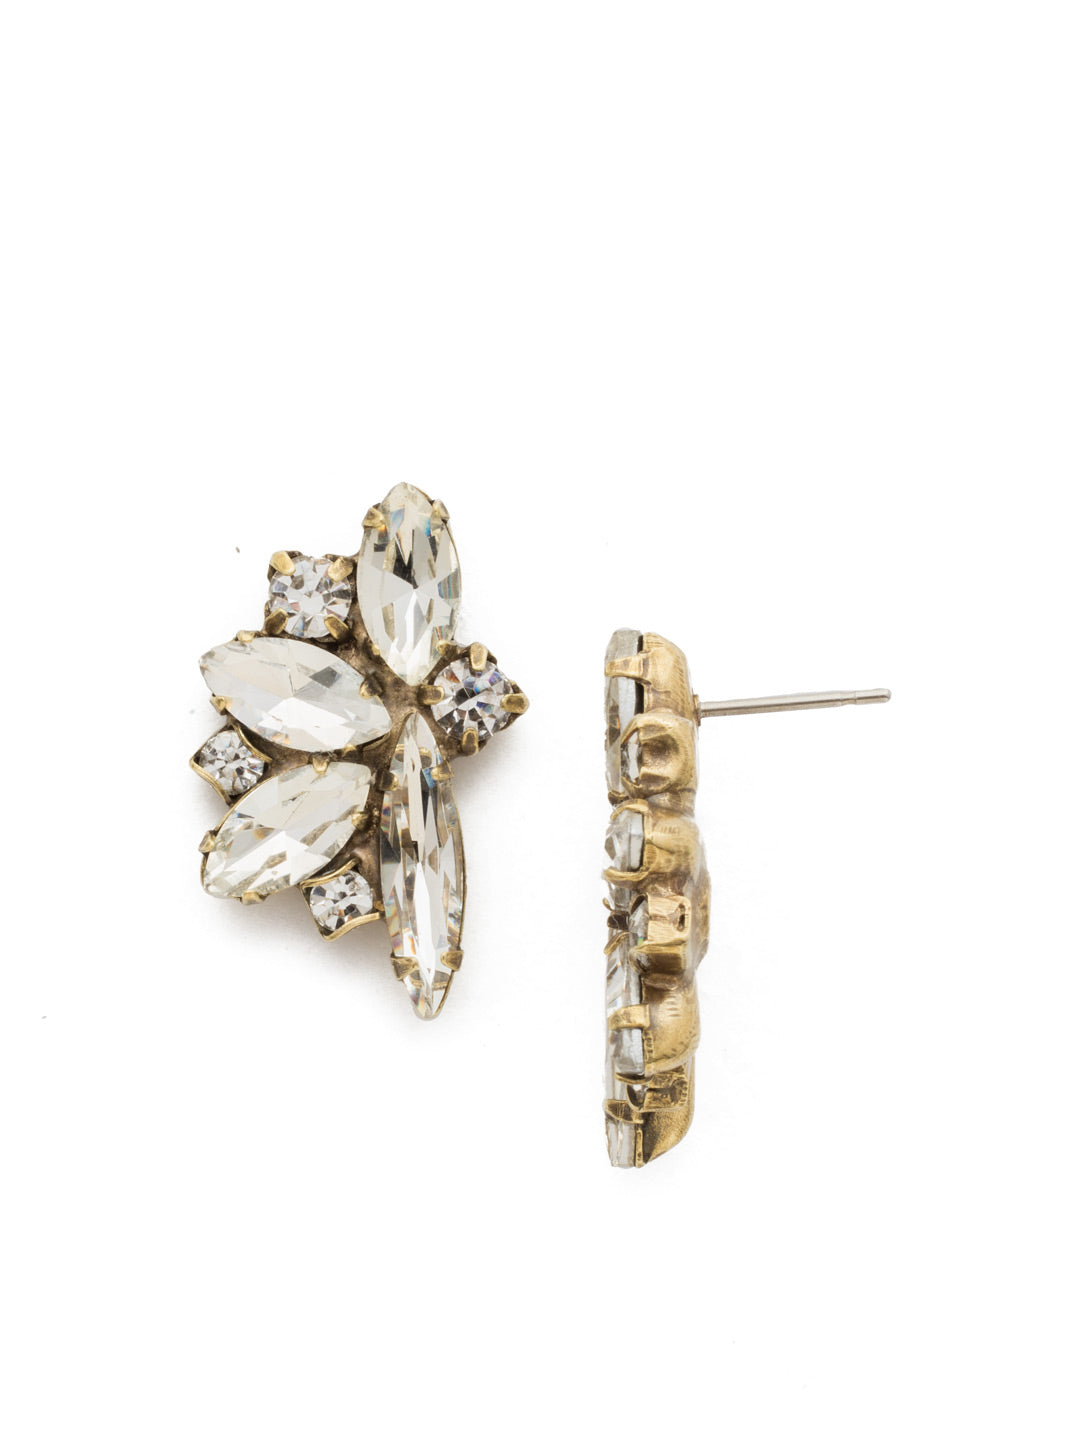 Fanned Navette Crystal Post Earring - ECZ21AGCRY